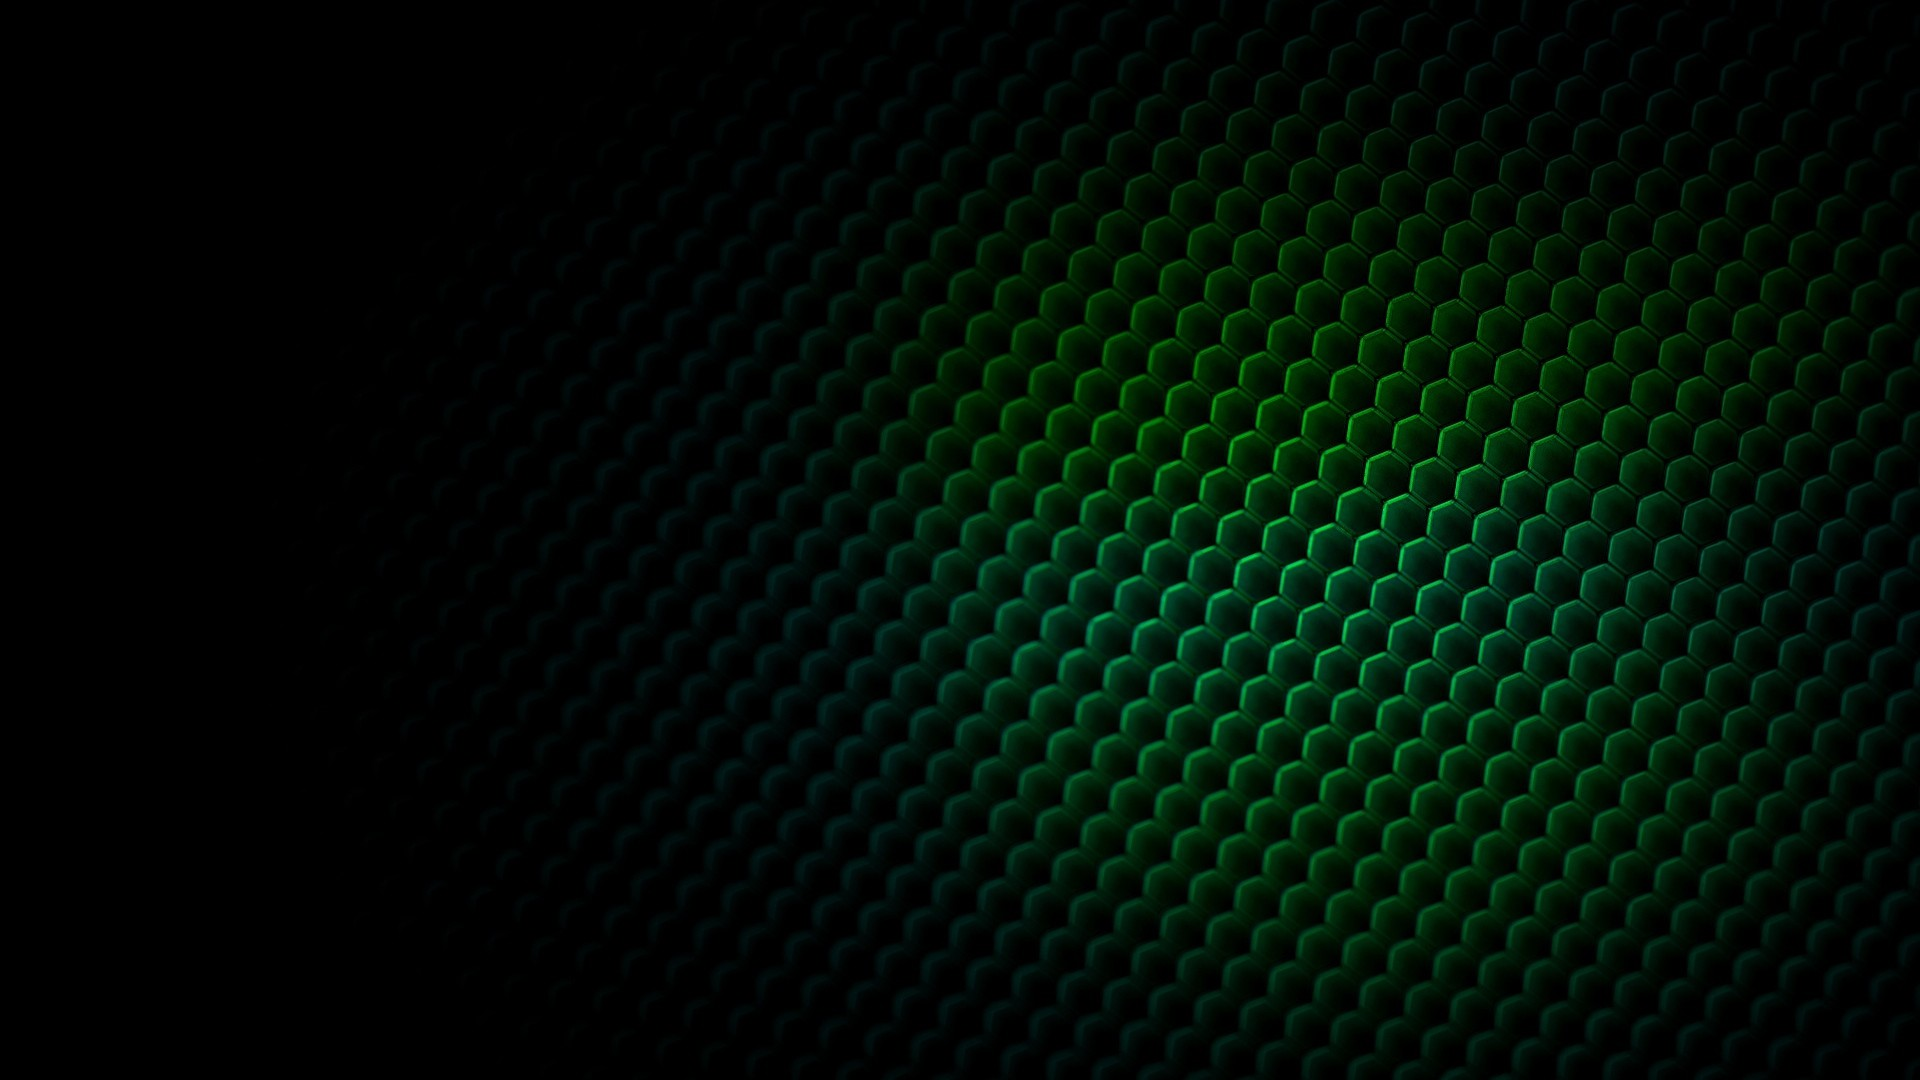 Green and Black Abstract Wallpaper Black And Green Wallpaper Wallpapers)